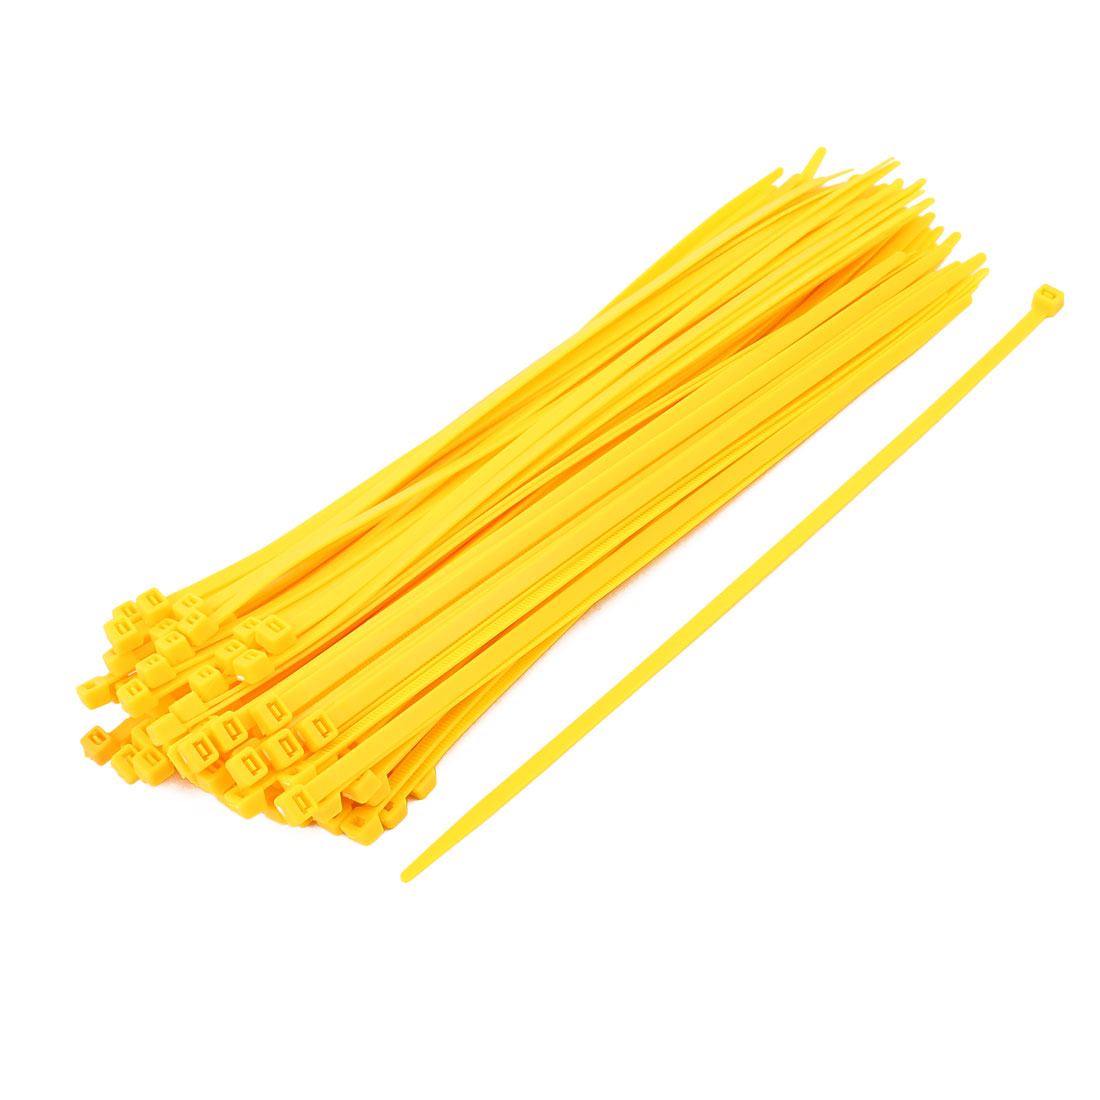 5mm x 250mm Self Locking Nylon Cable Ties Industrial Wire Zip Ties Yellow 100pcs